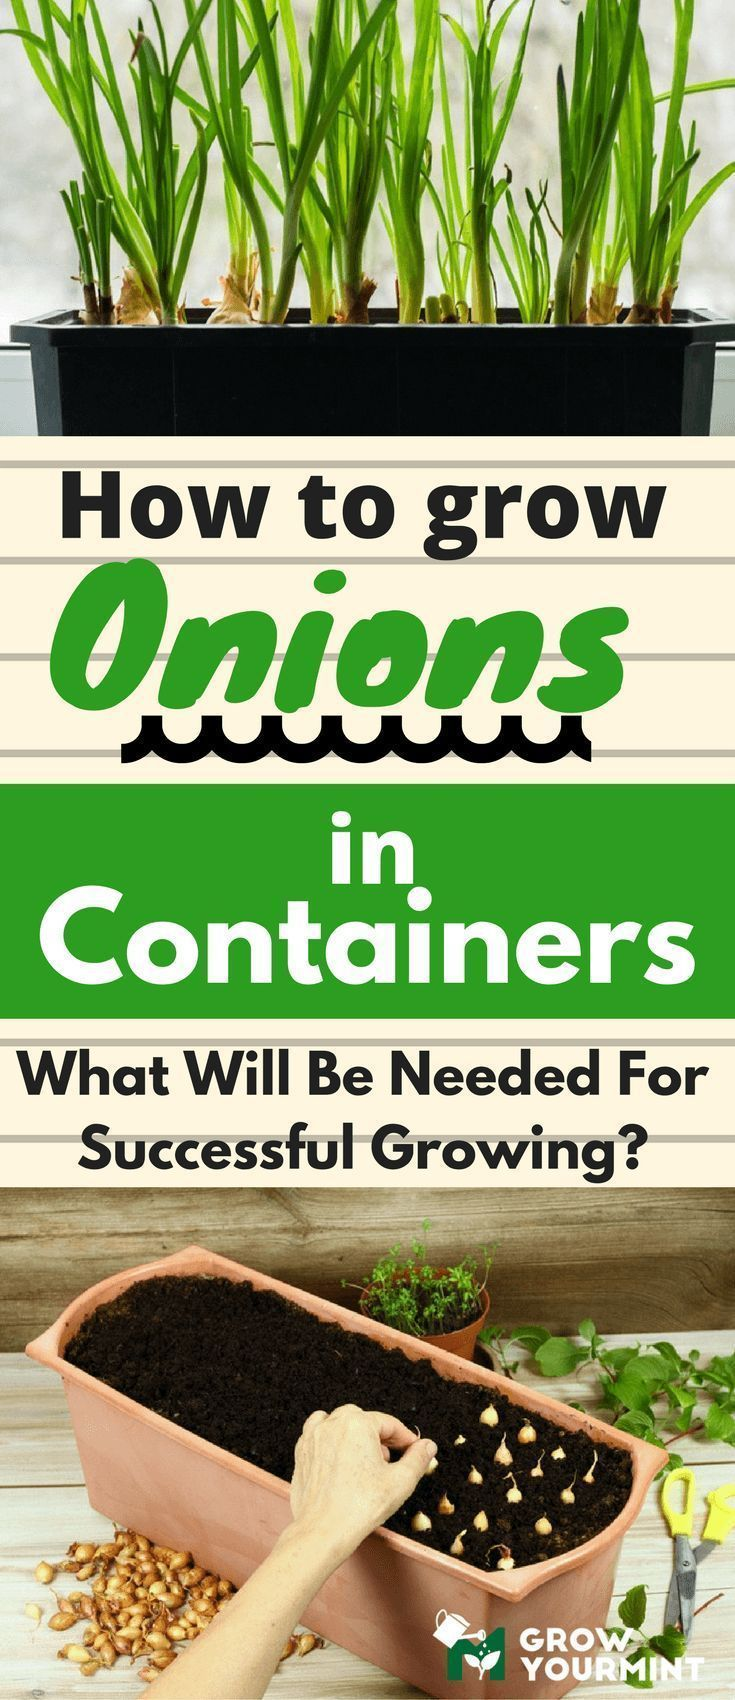 How to grow onions in containers #onion#container#growyourmint #howtourbangarden